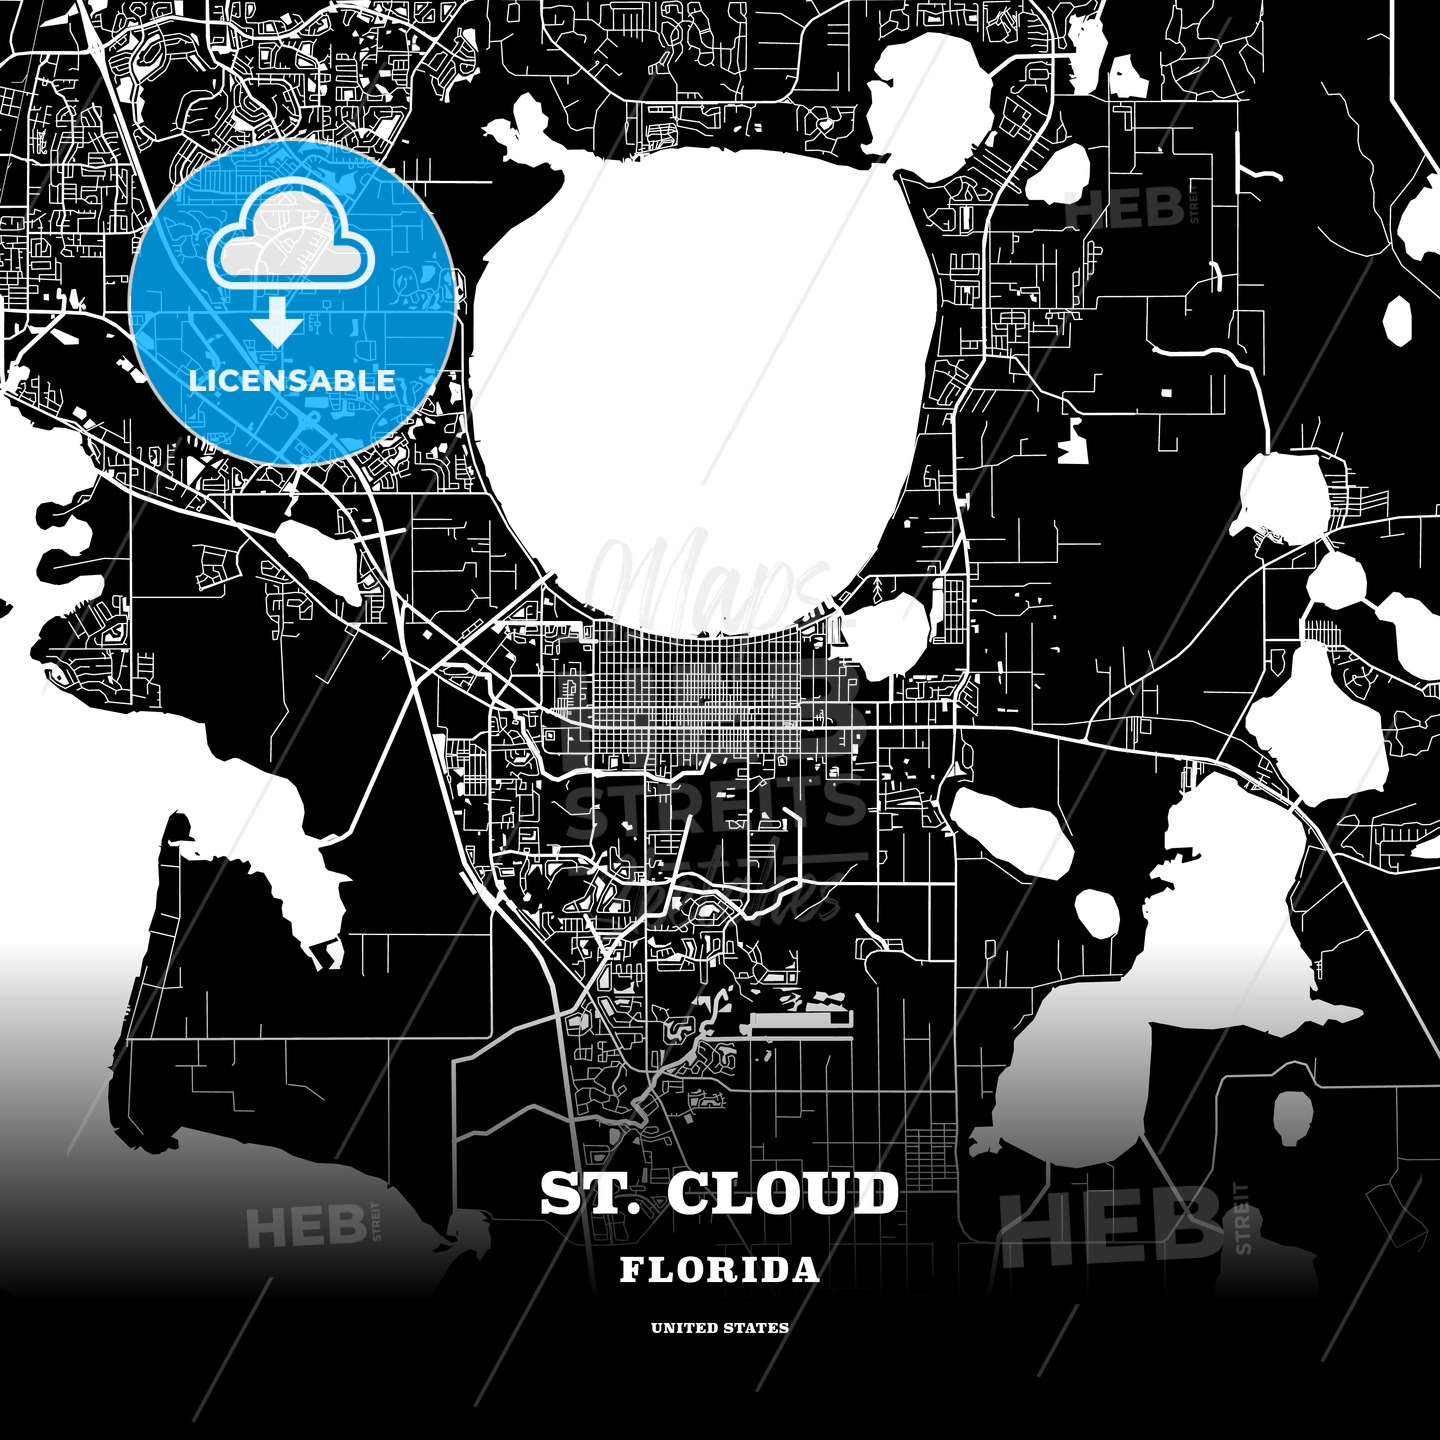 Black map poster template of St. Cloud, Florida, USA